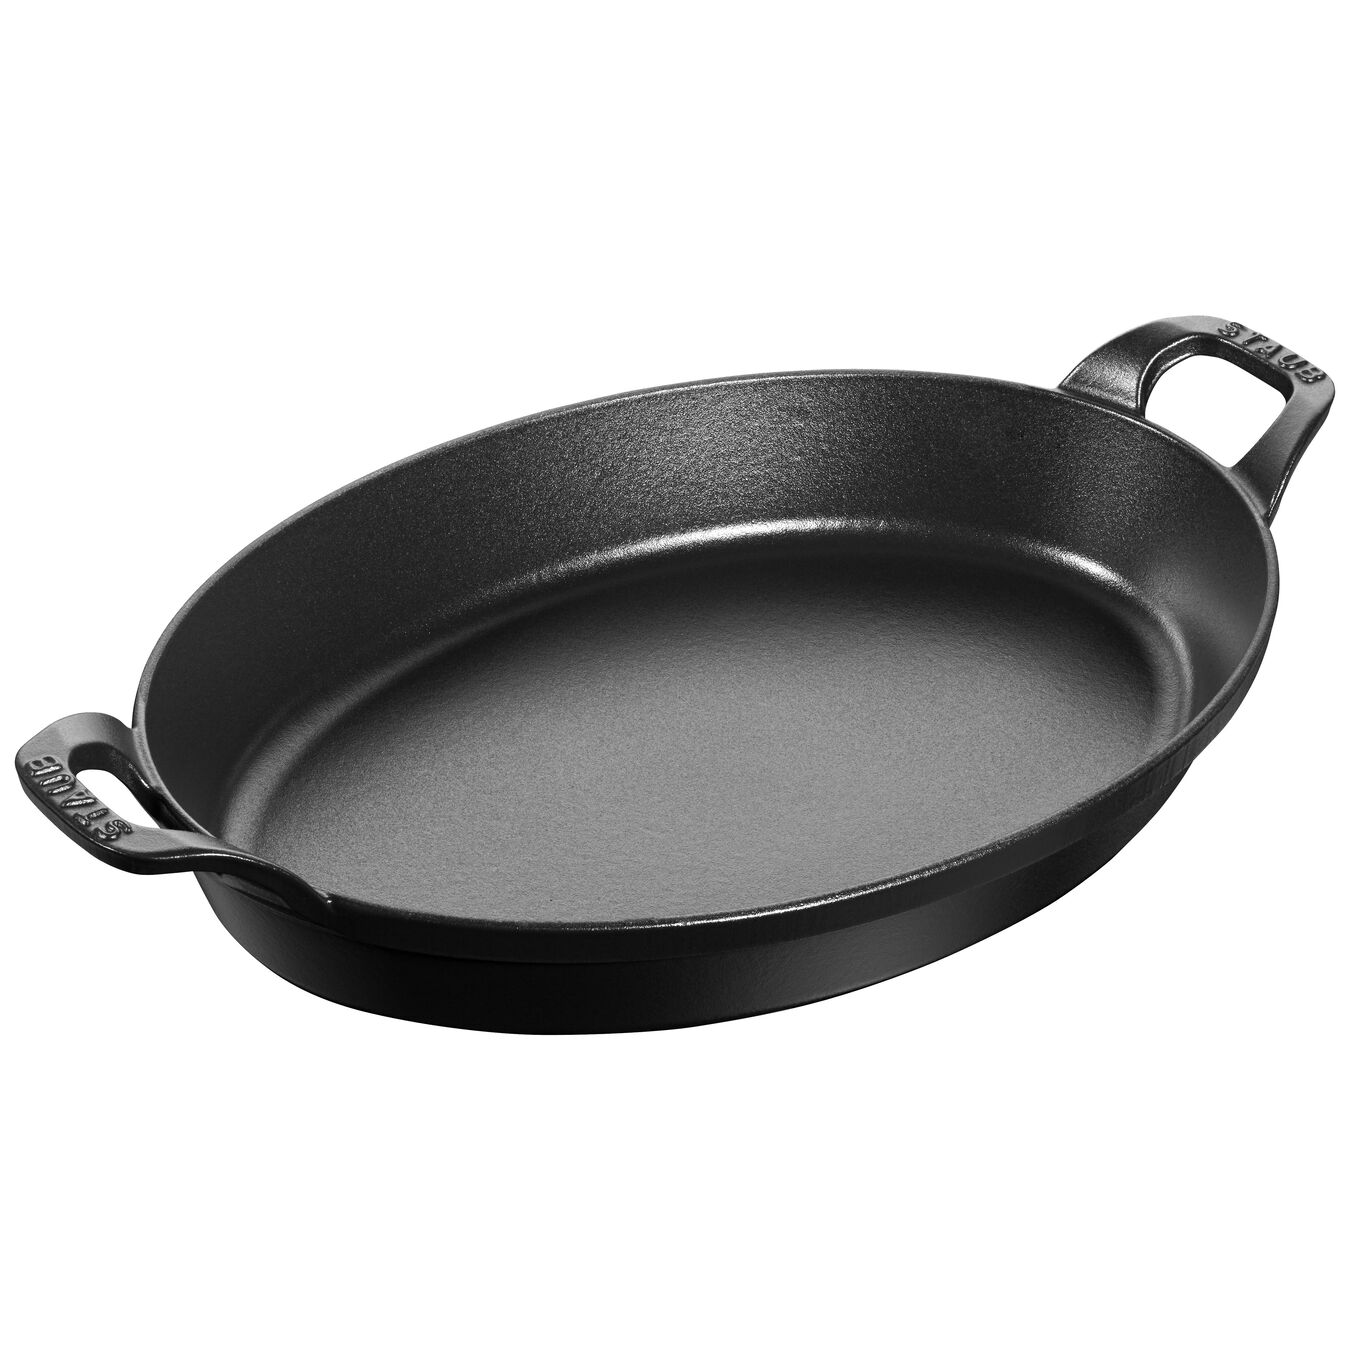 12.5-inch x 9-inch Oval Baking Dish - Matte Black,,large 1